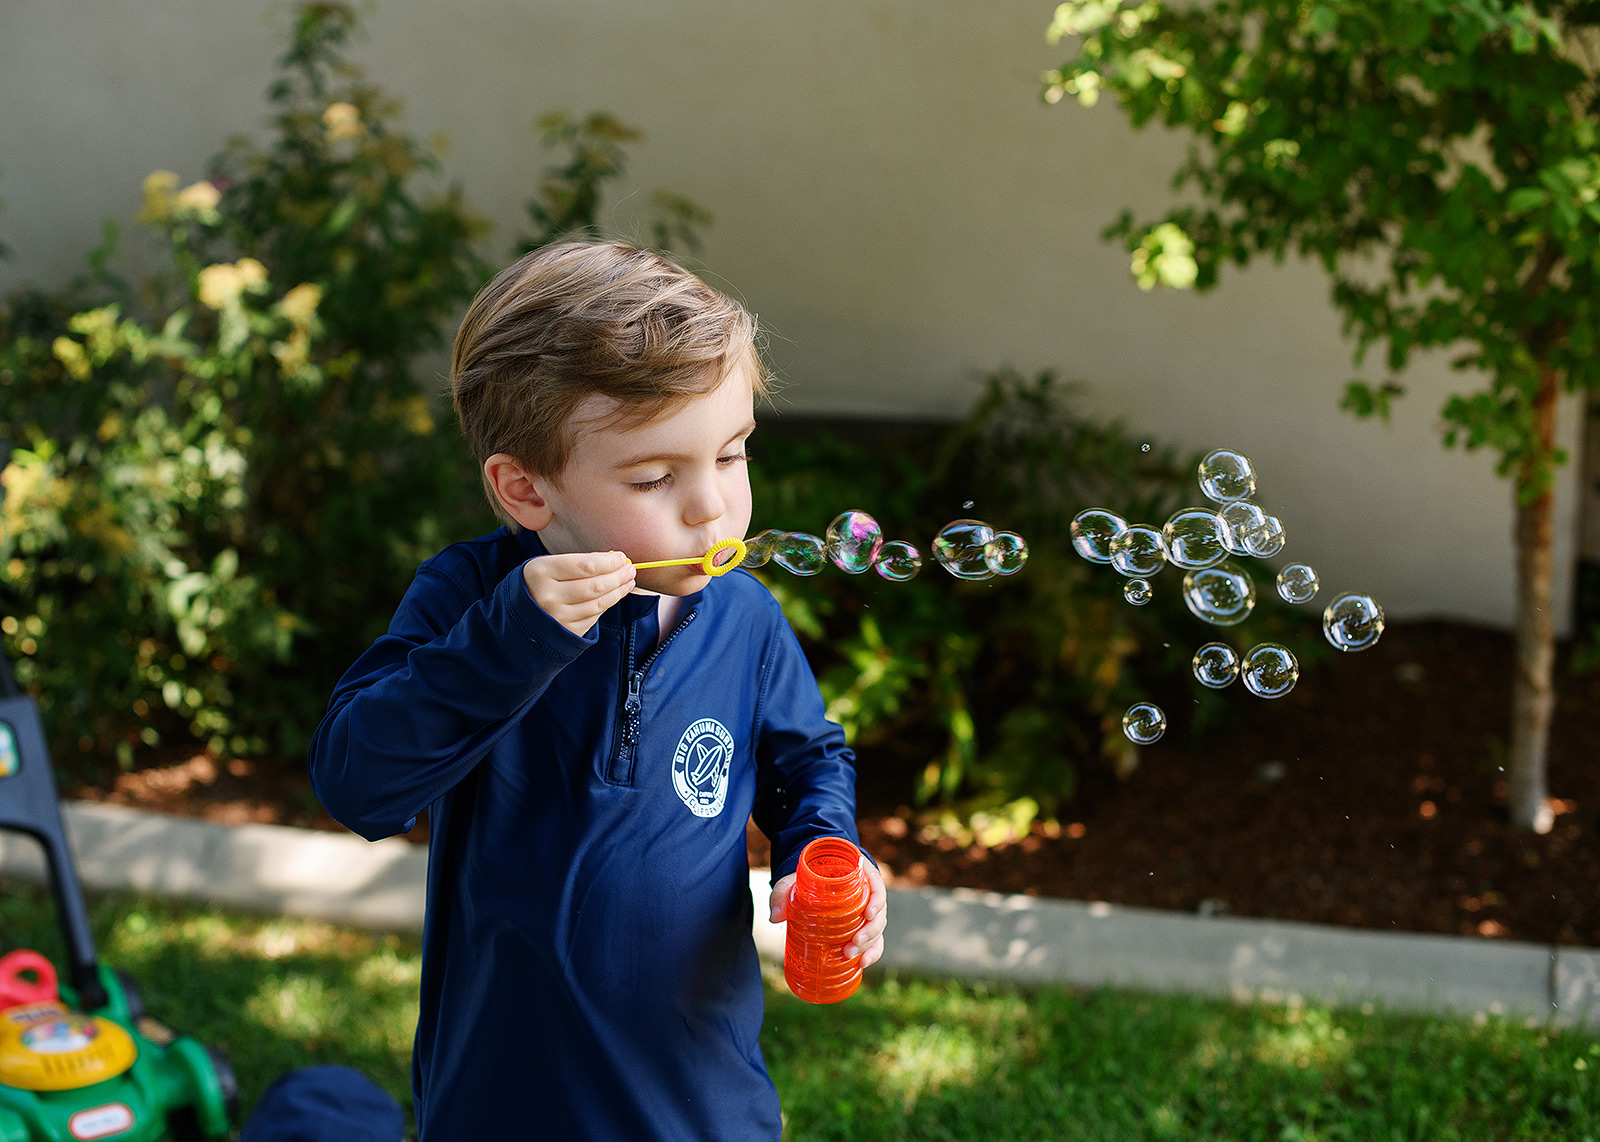 Boy blows bubbles during first birthday party outside